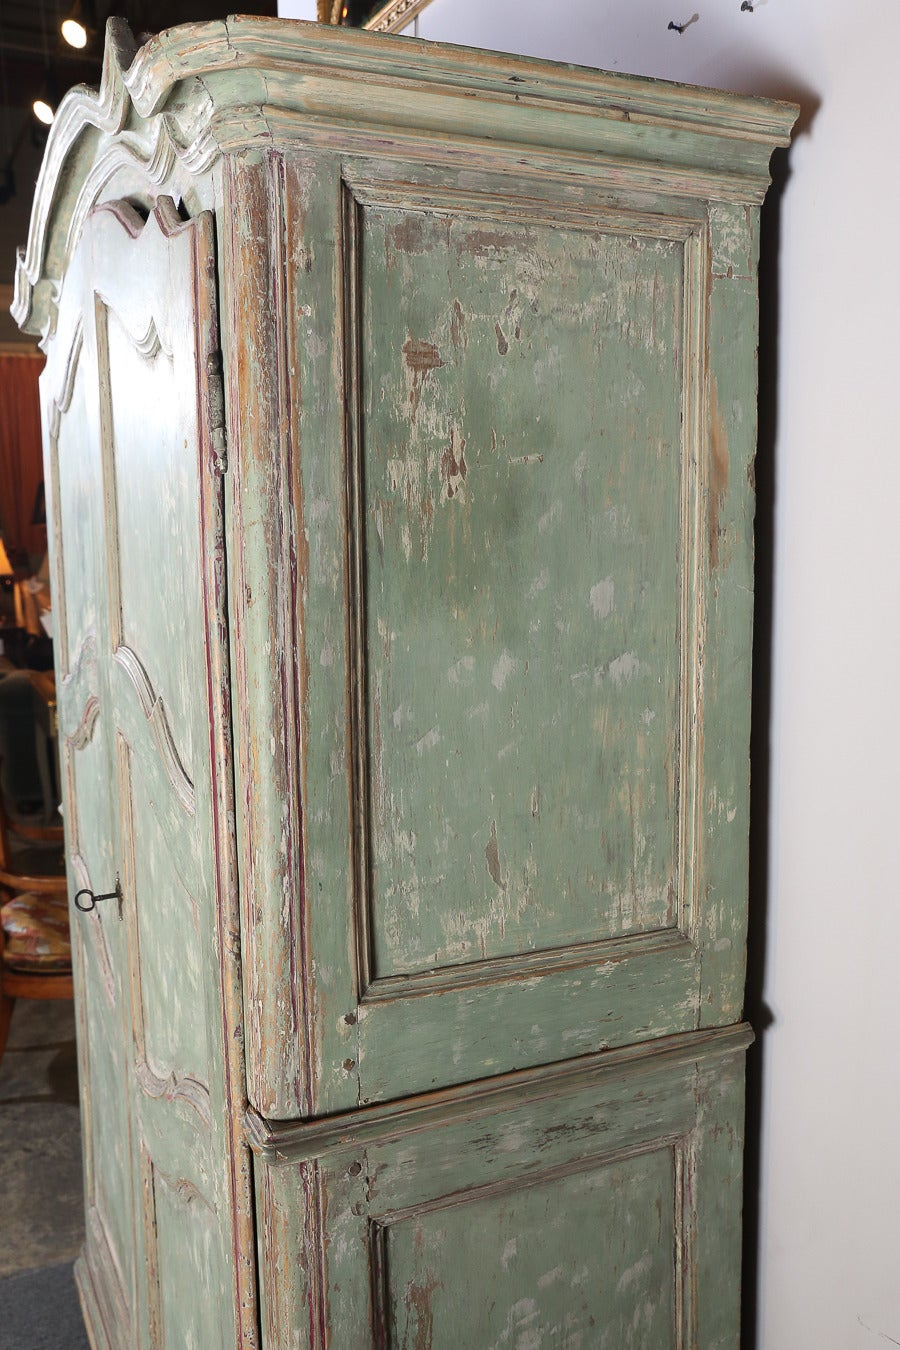 Antique Distressed Painted Italian Armoire For Sale at 1stdibs